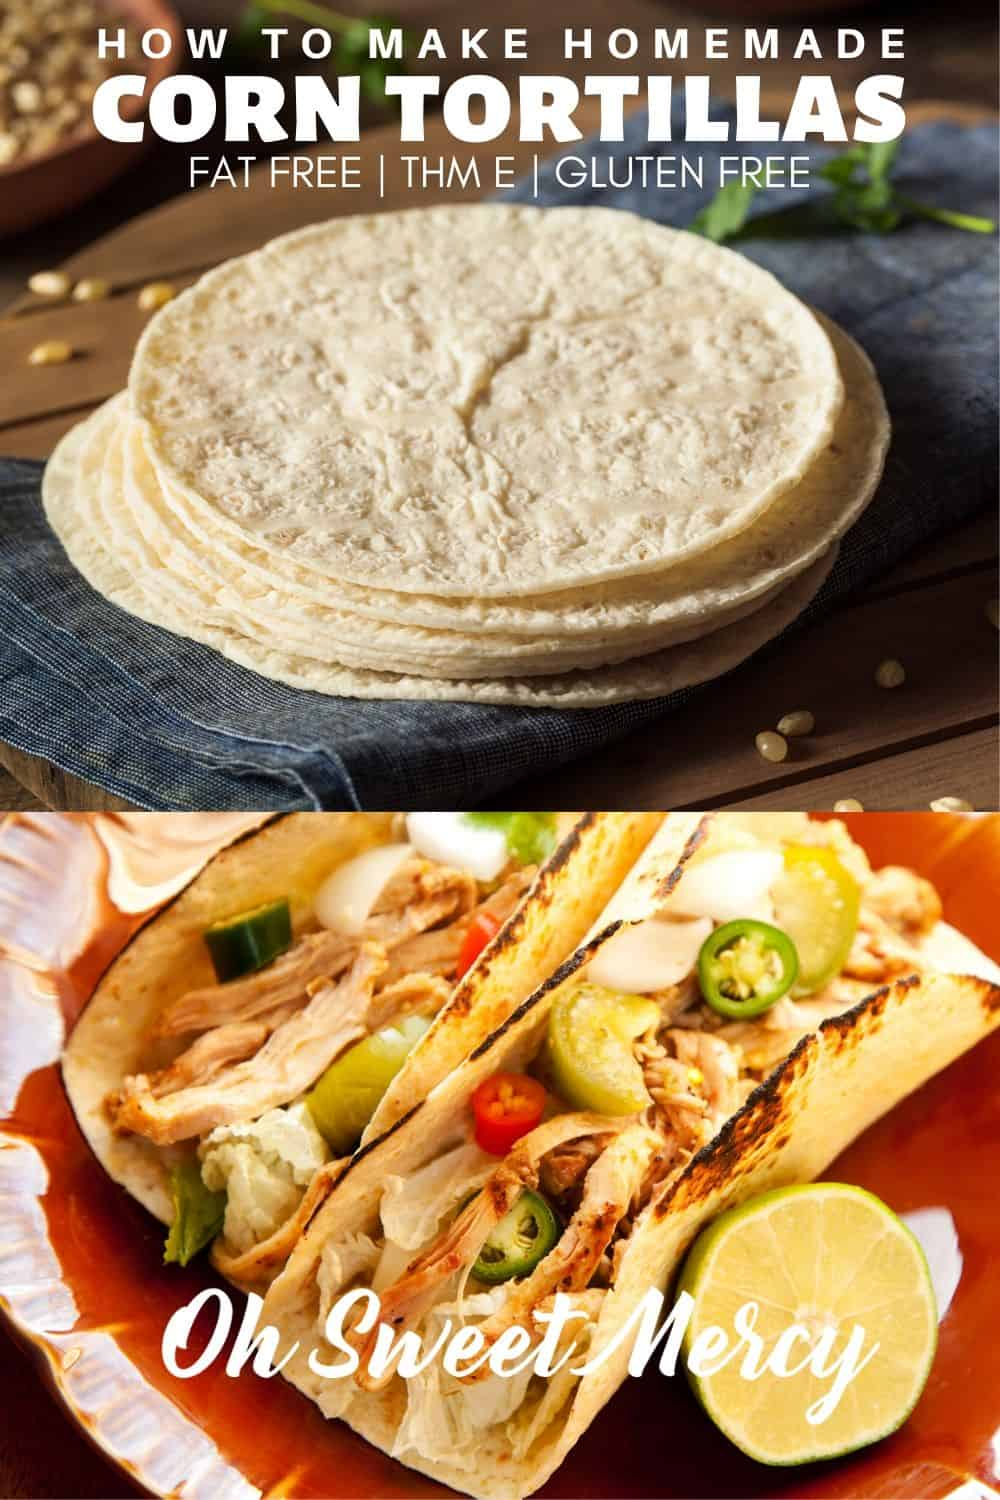 Make easy, 3-ingredient, homemade corn tortillas! Fat free, gluten free, and great for THM E meals. #thm #glutenfree #fatfree #homemade #tortillas